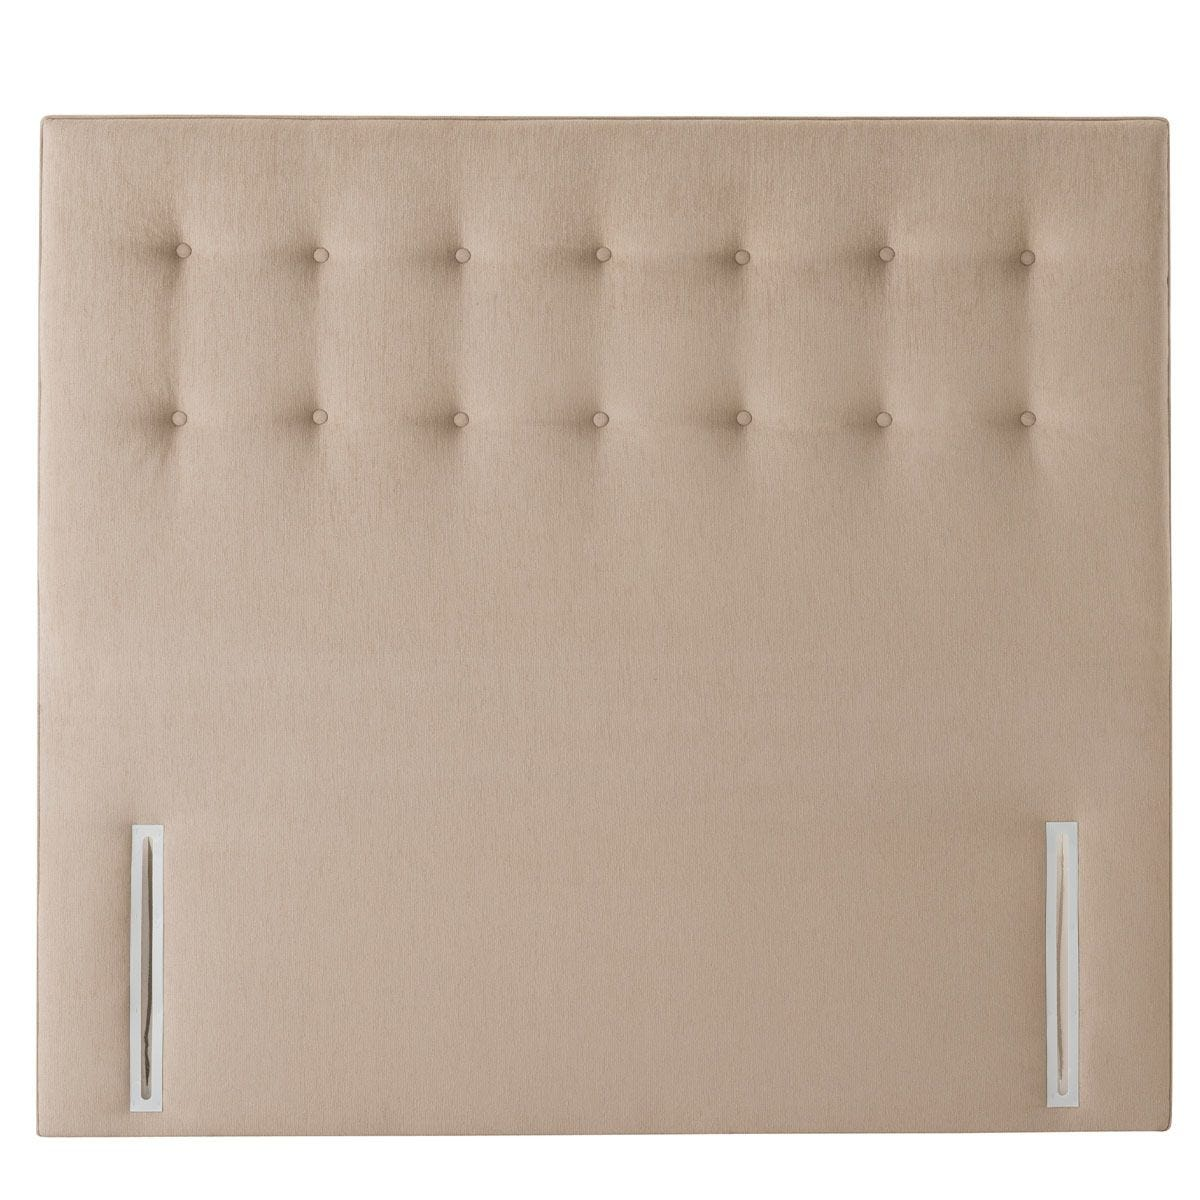 Silentnight Goya Sand Headboard - Super King